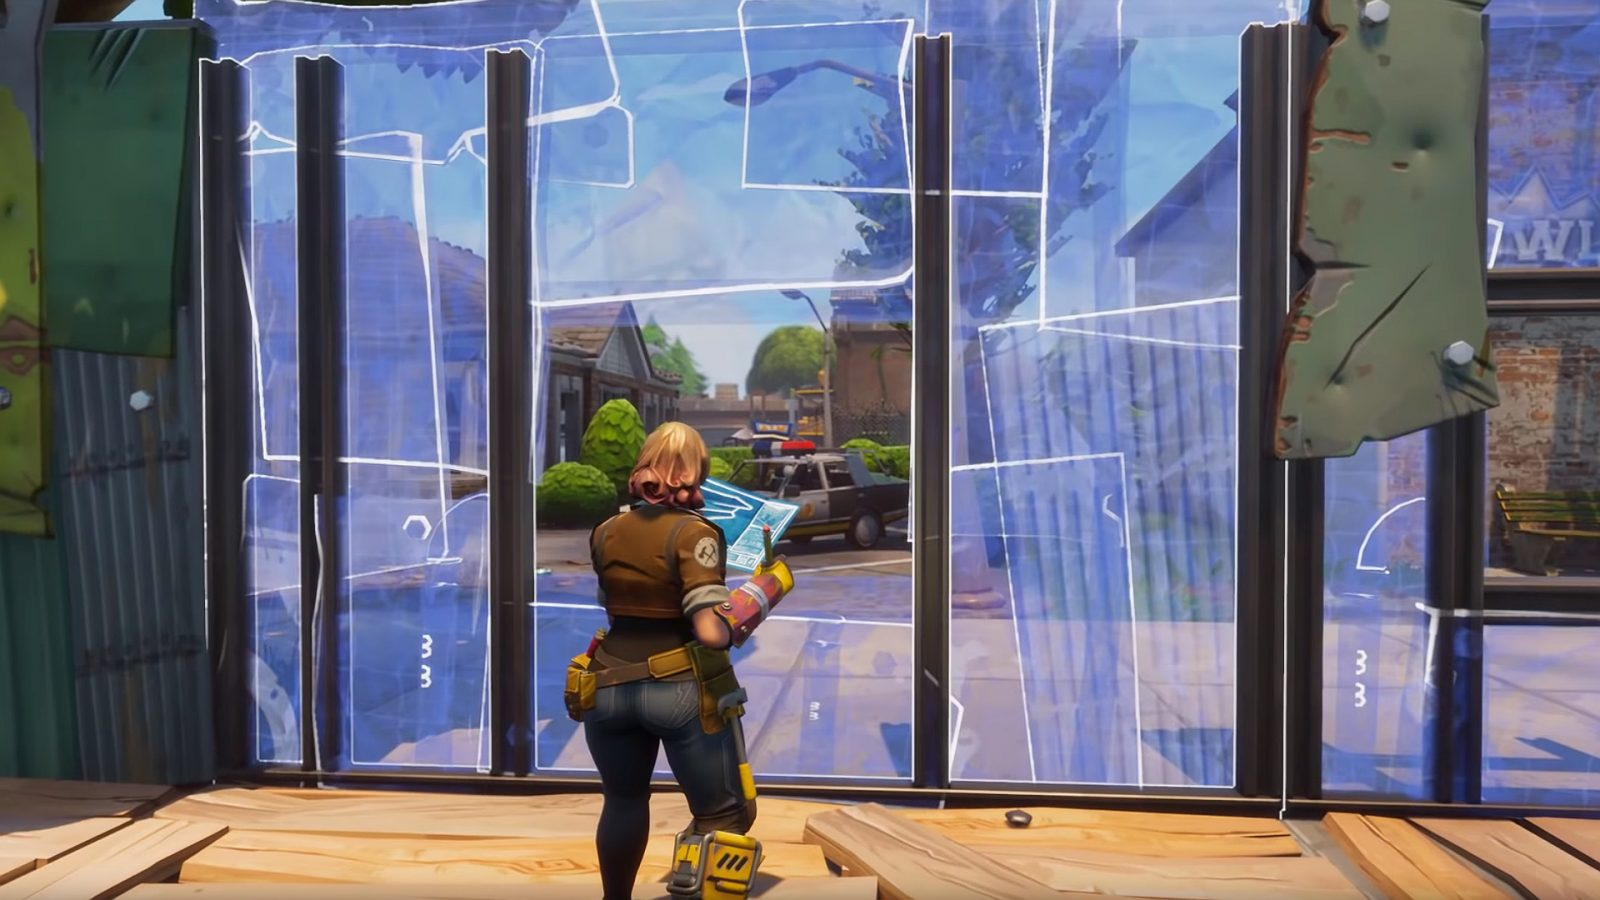 The best building games on PC